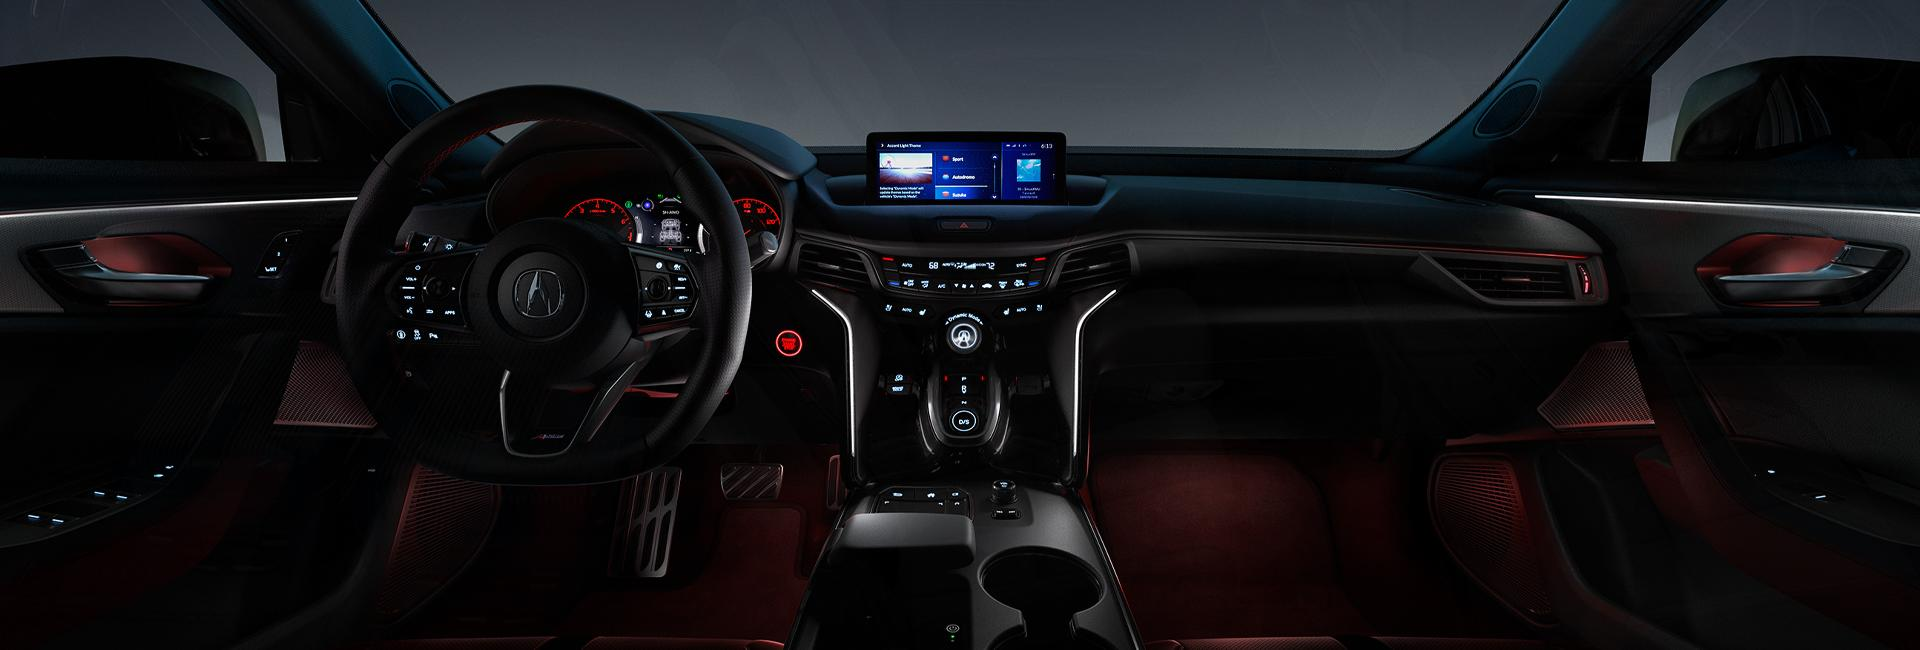 Interior dash and infotainment system of the Acura TLX